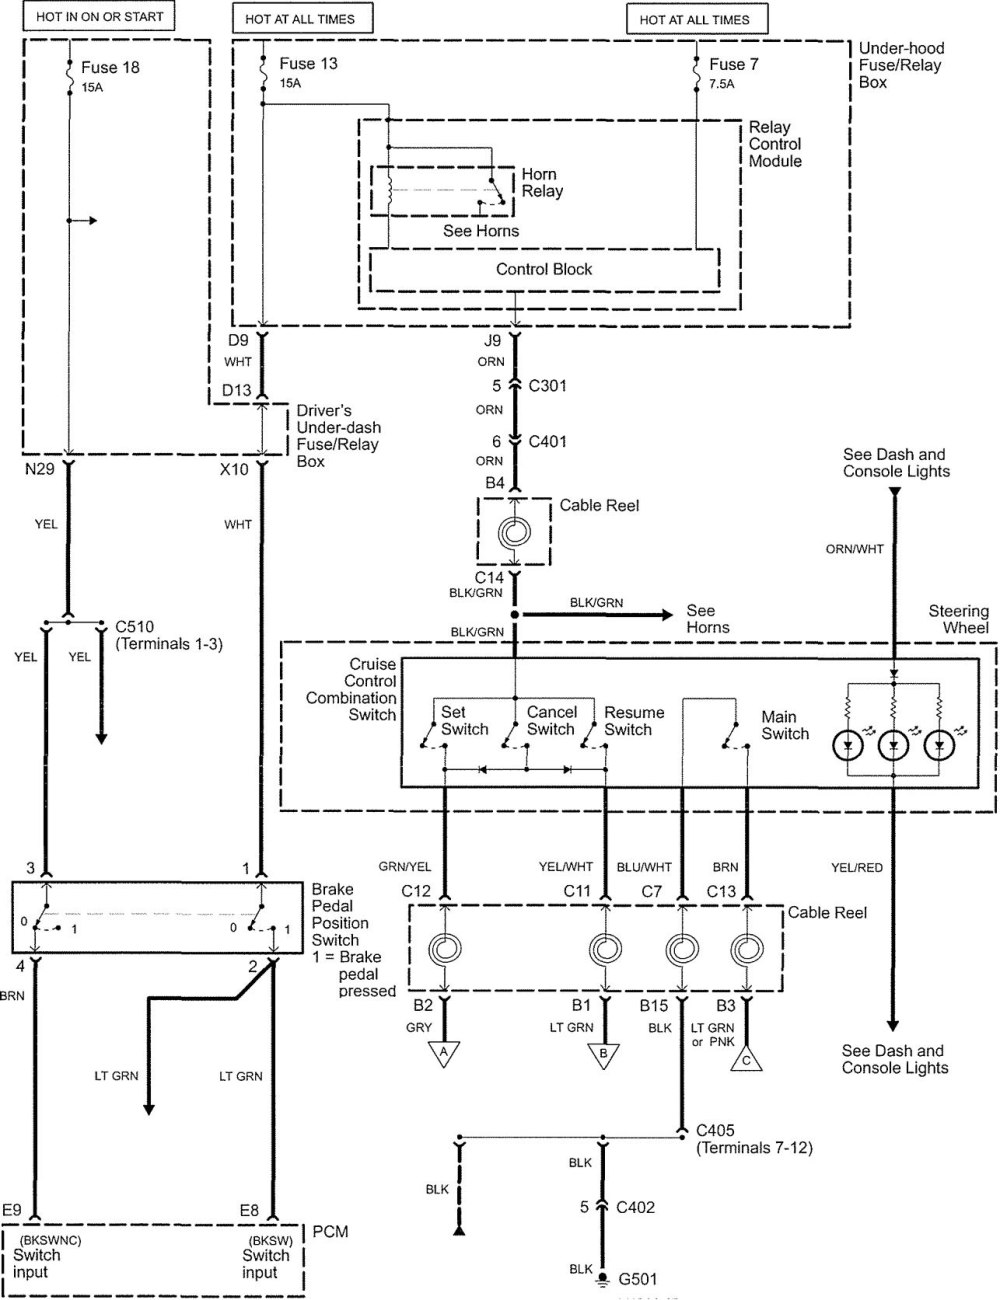 medium resolution of acura rl wiring diagram wiring diagram perfomance 2005 acura rl wiring diagram 05 acura rl wiring diagram